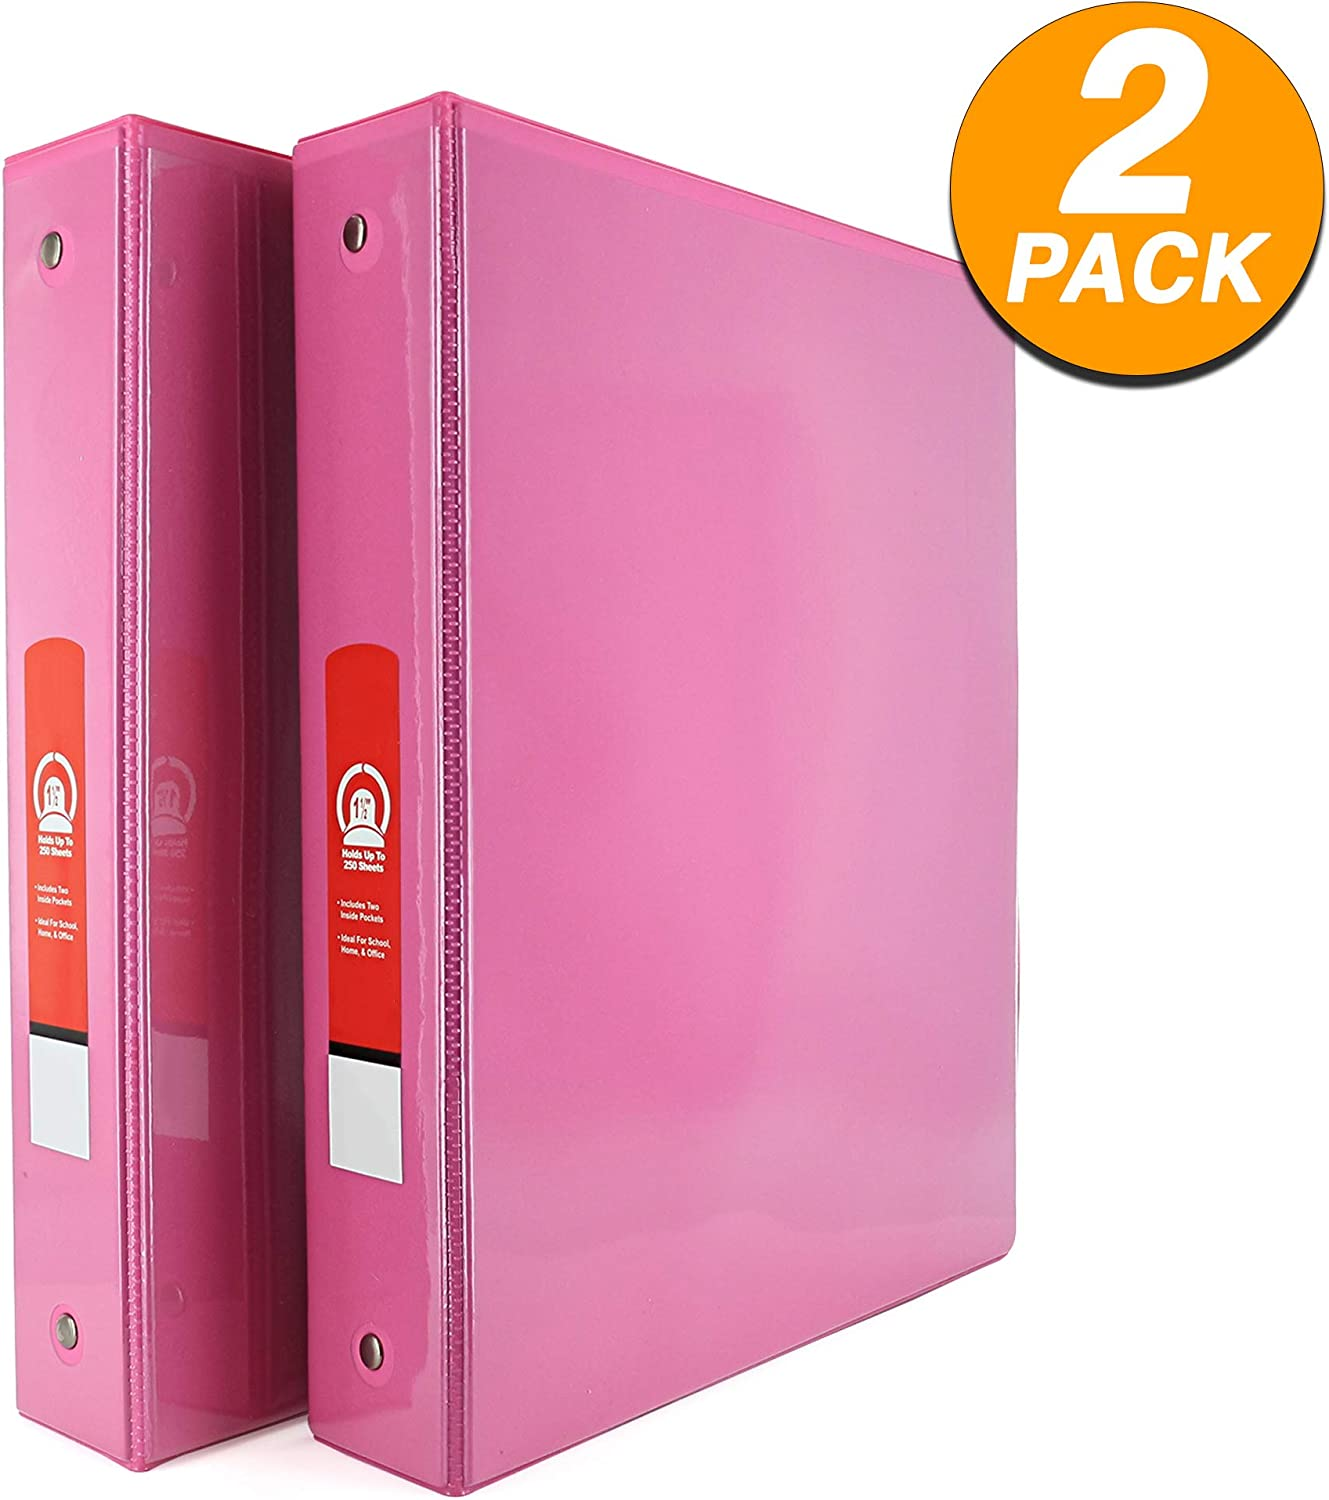 """Emraw Super Great 1 1/2"""" 3-Ring View Binder with 2-Pockets - Available in Fuschia - Great for School, Home, Office (2-Pack)"""